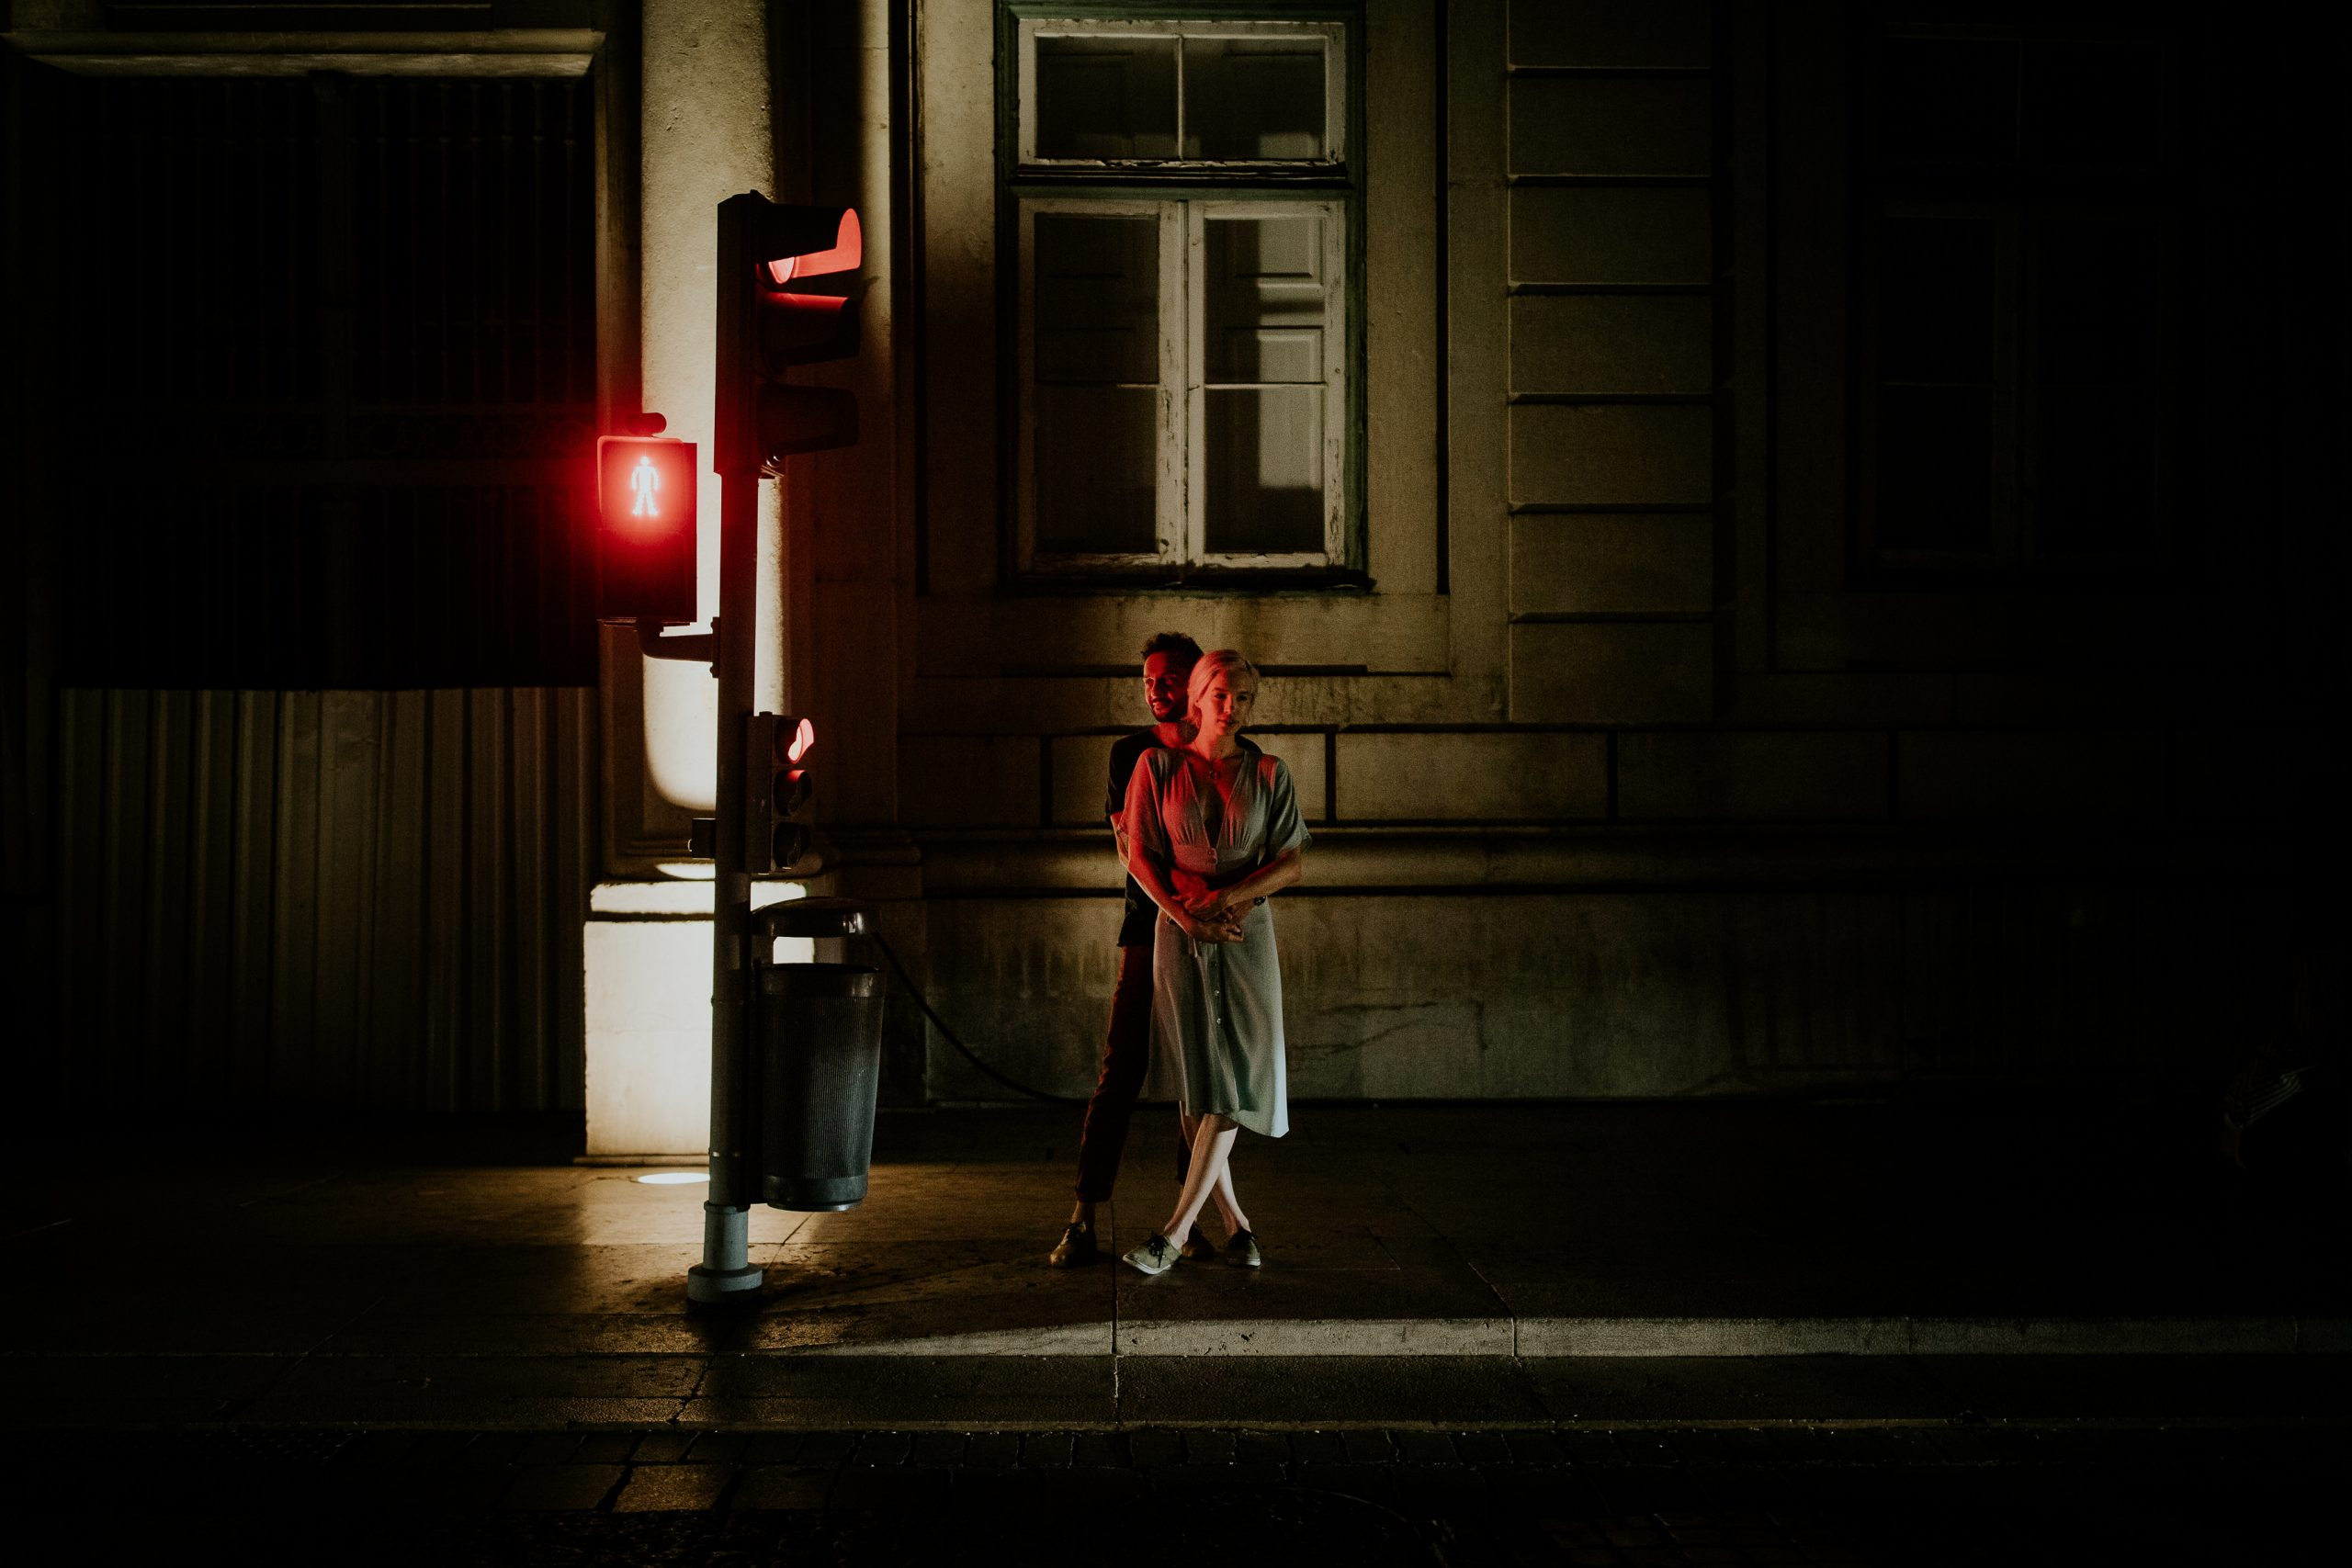 couple embrace at night next to a red traffic light